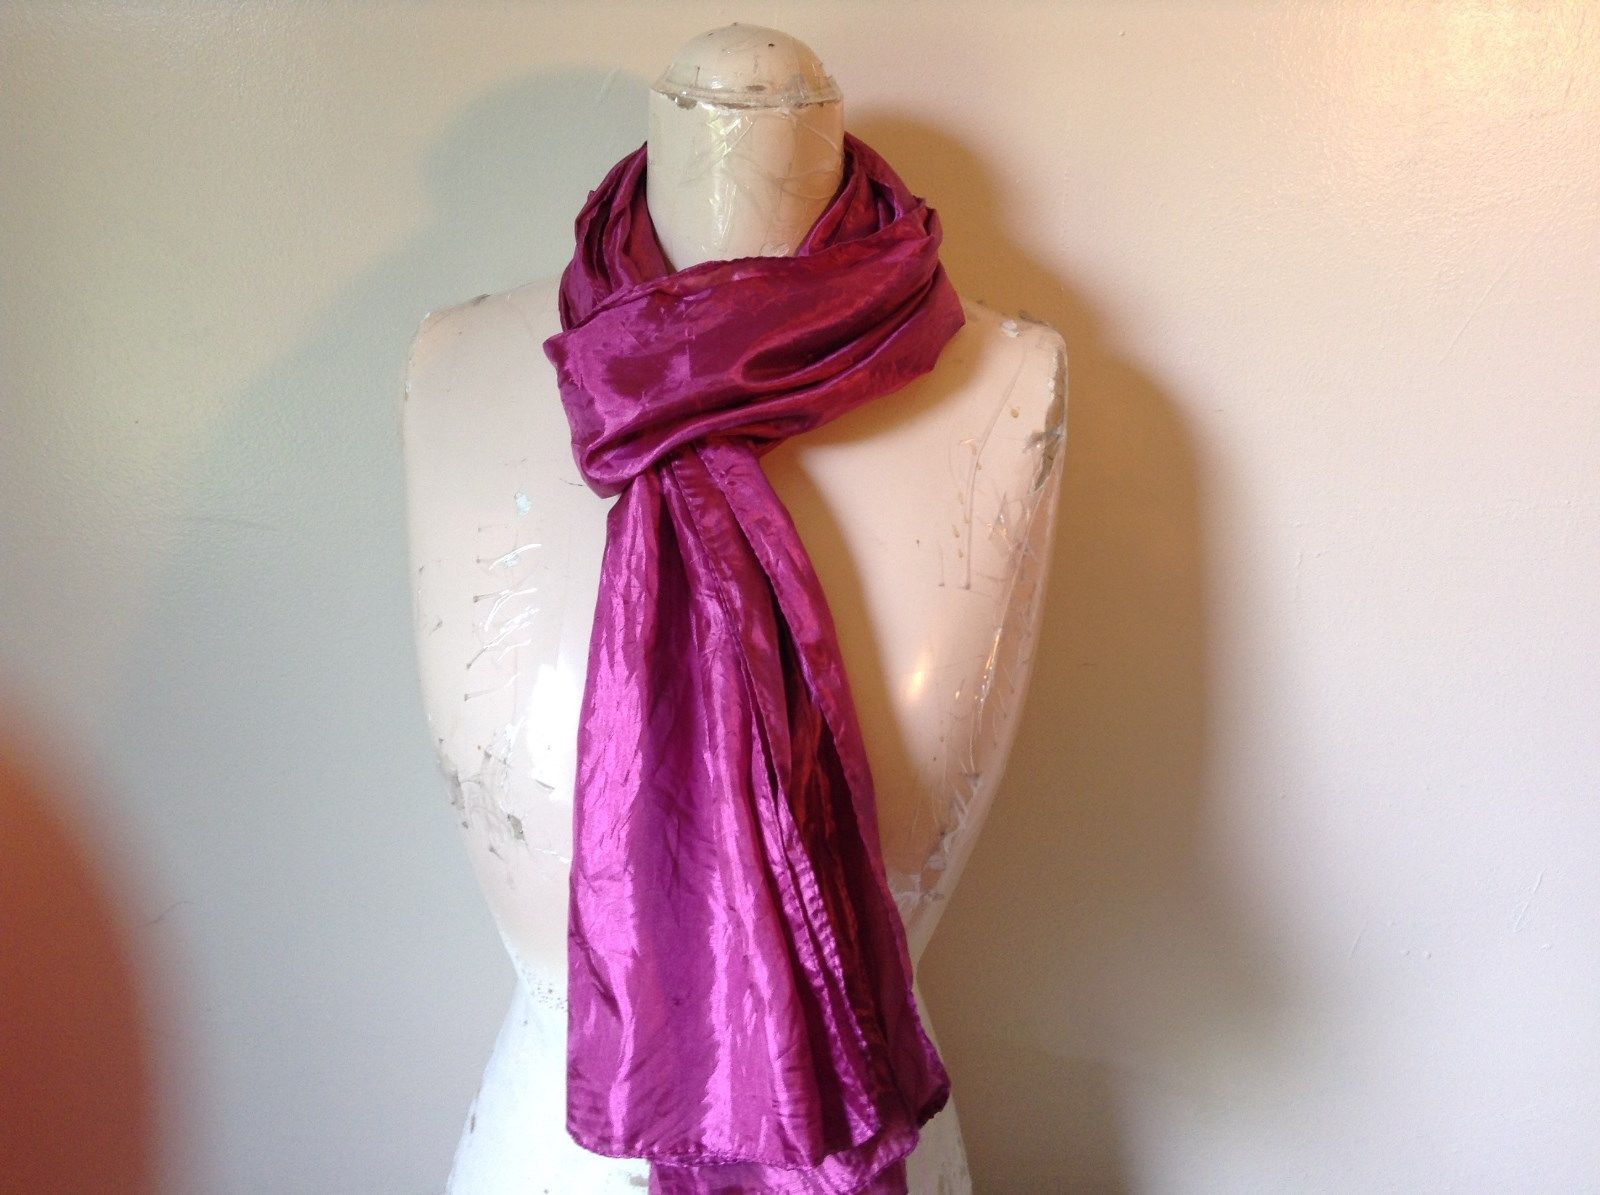 Pink Shiny Smooth Scarf Twos Company 100 Percent Polyester